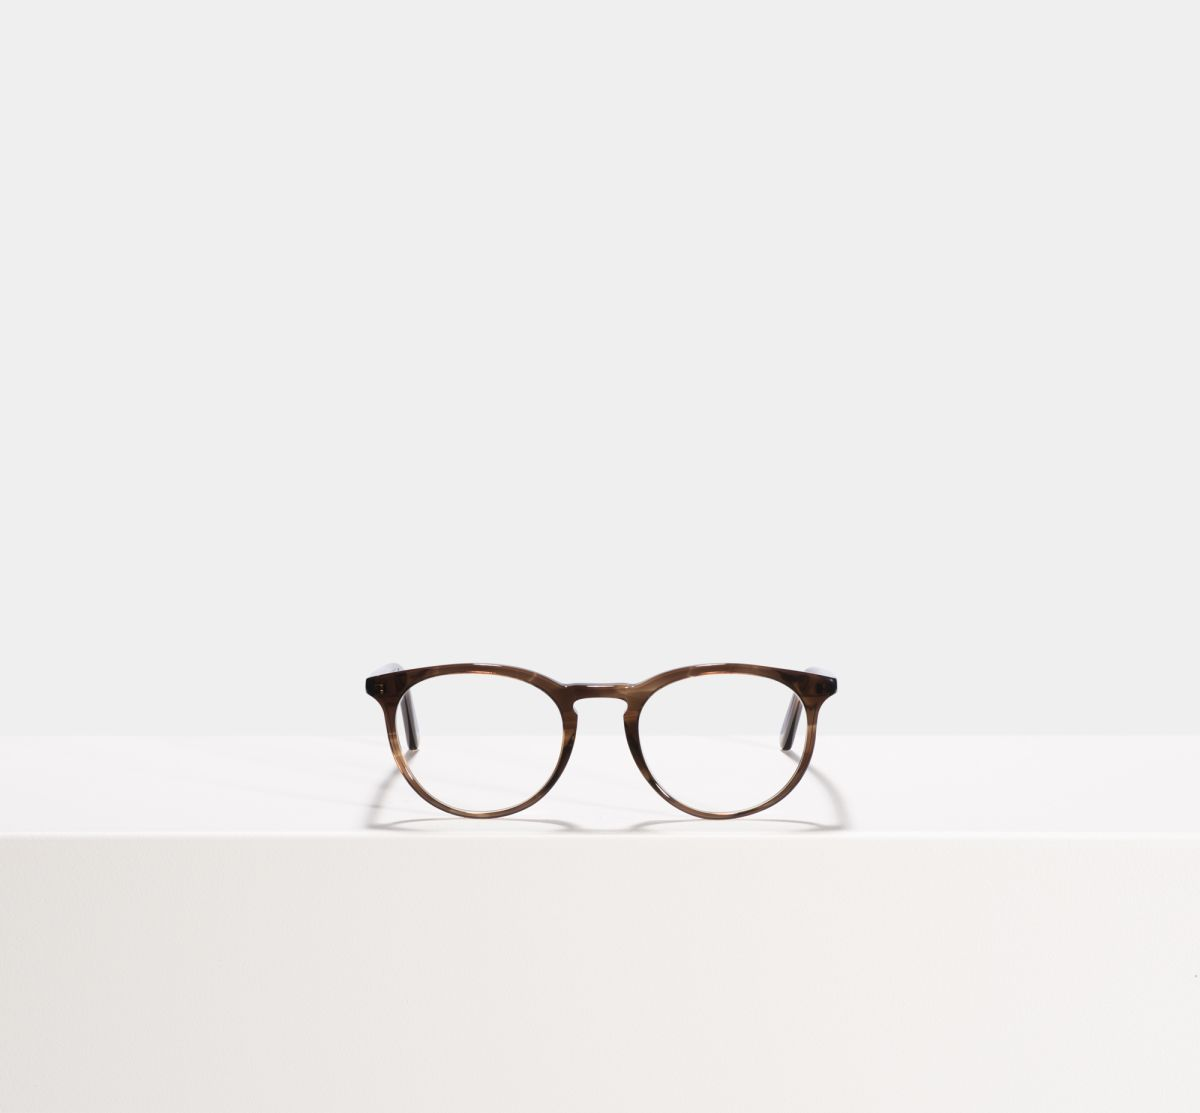 Floyd rund Acetat glasses in Dark Ale by Ace & Tate